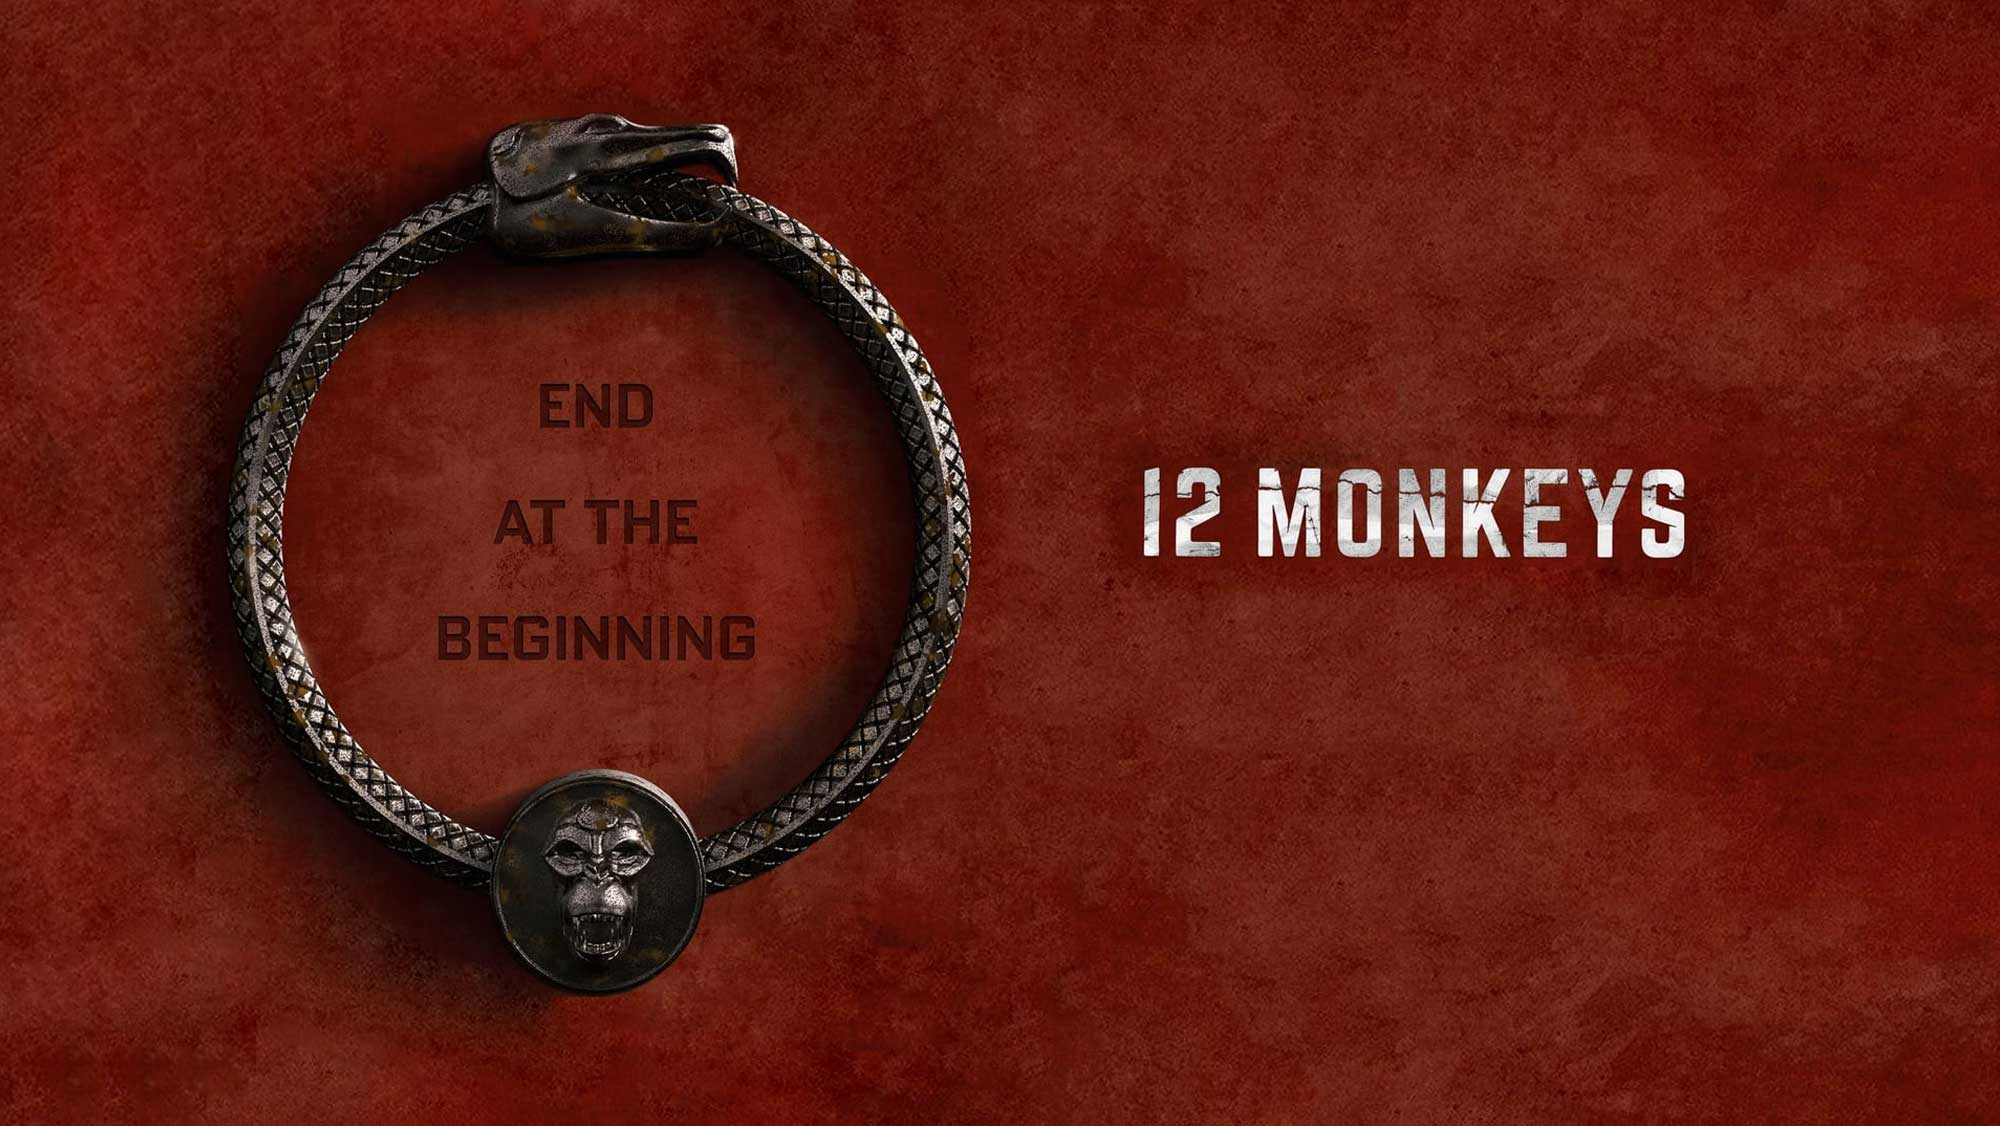 12-Monkeys-staffel-4-review_01 Review: 12 Monkeys - Staffel 4